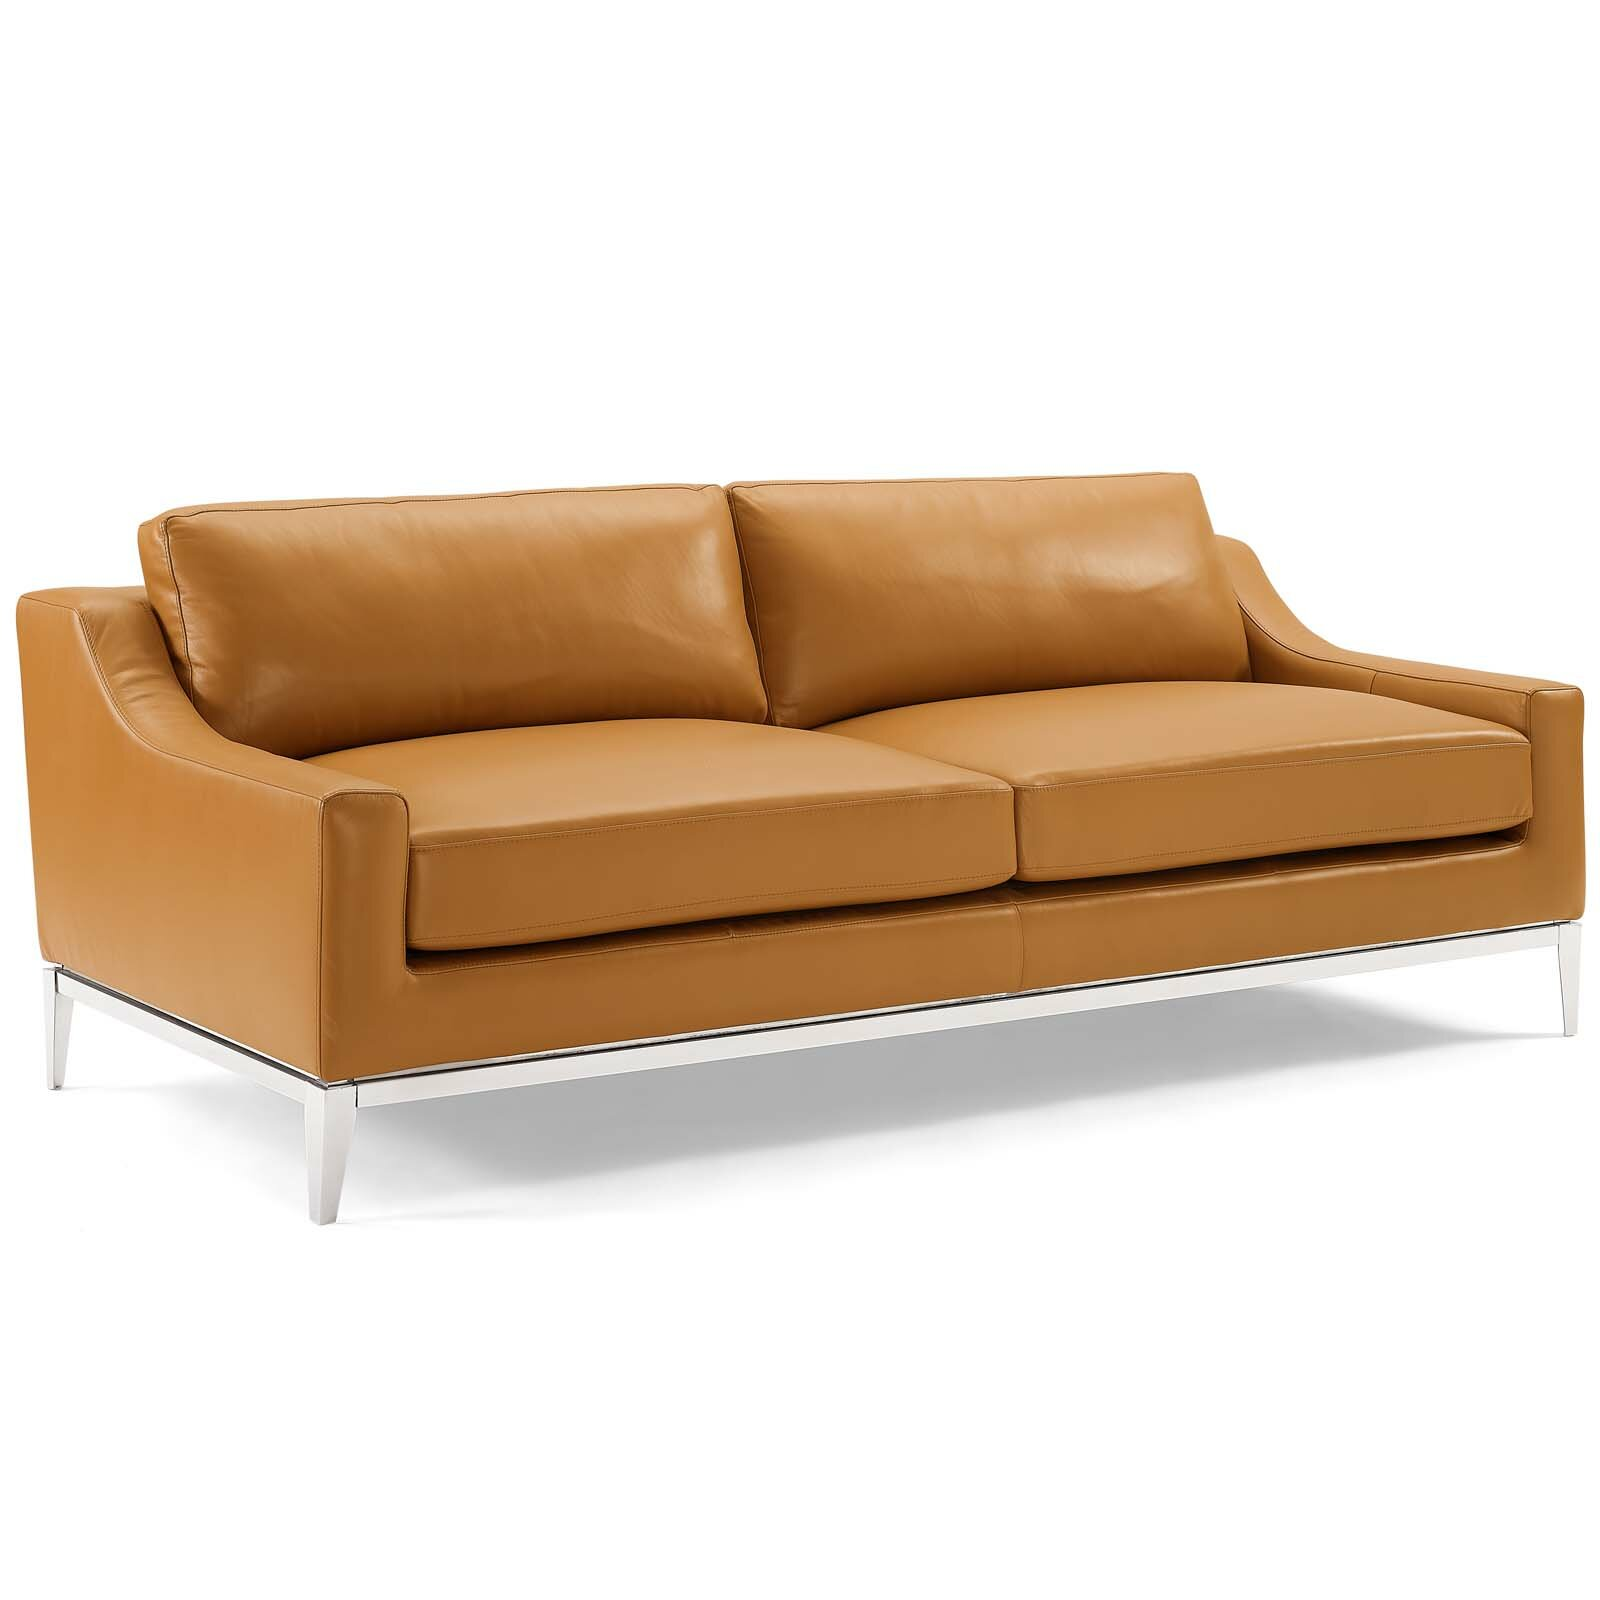 Stupendous Idell Leather Sofa Squirreltailoven Fun Painted Chair Ideas Images Squirreltailovenorg